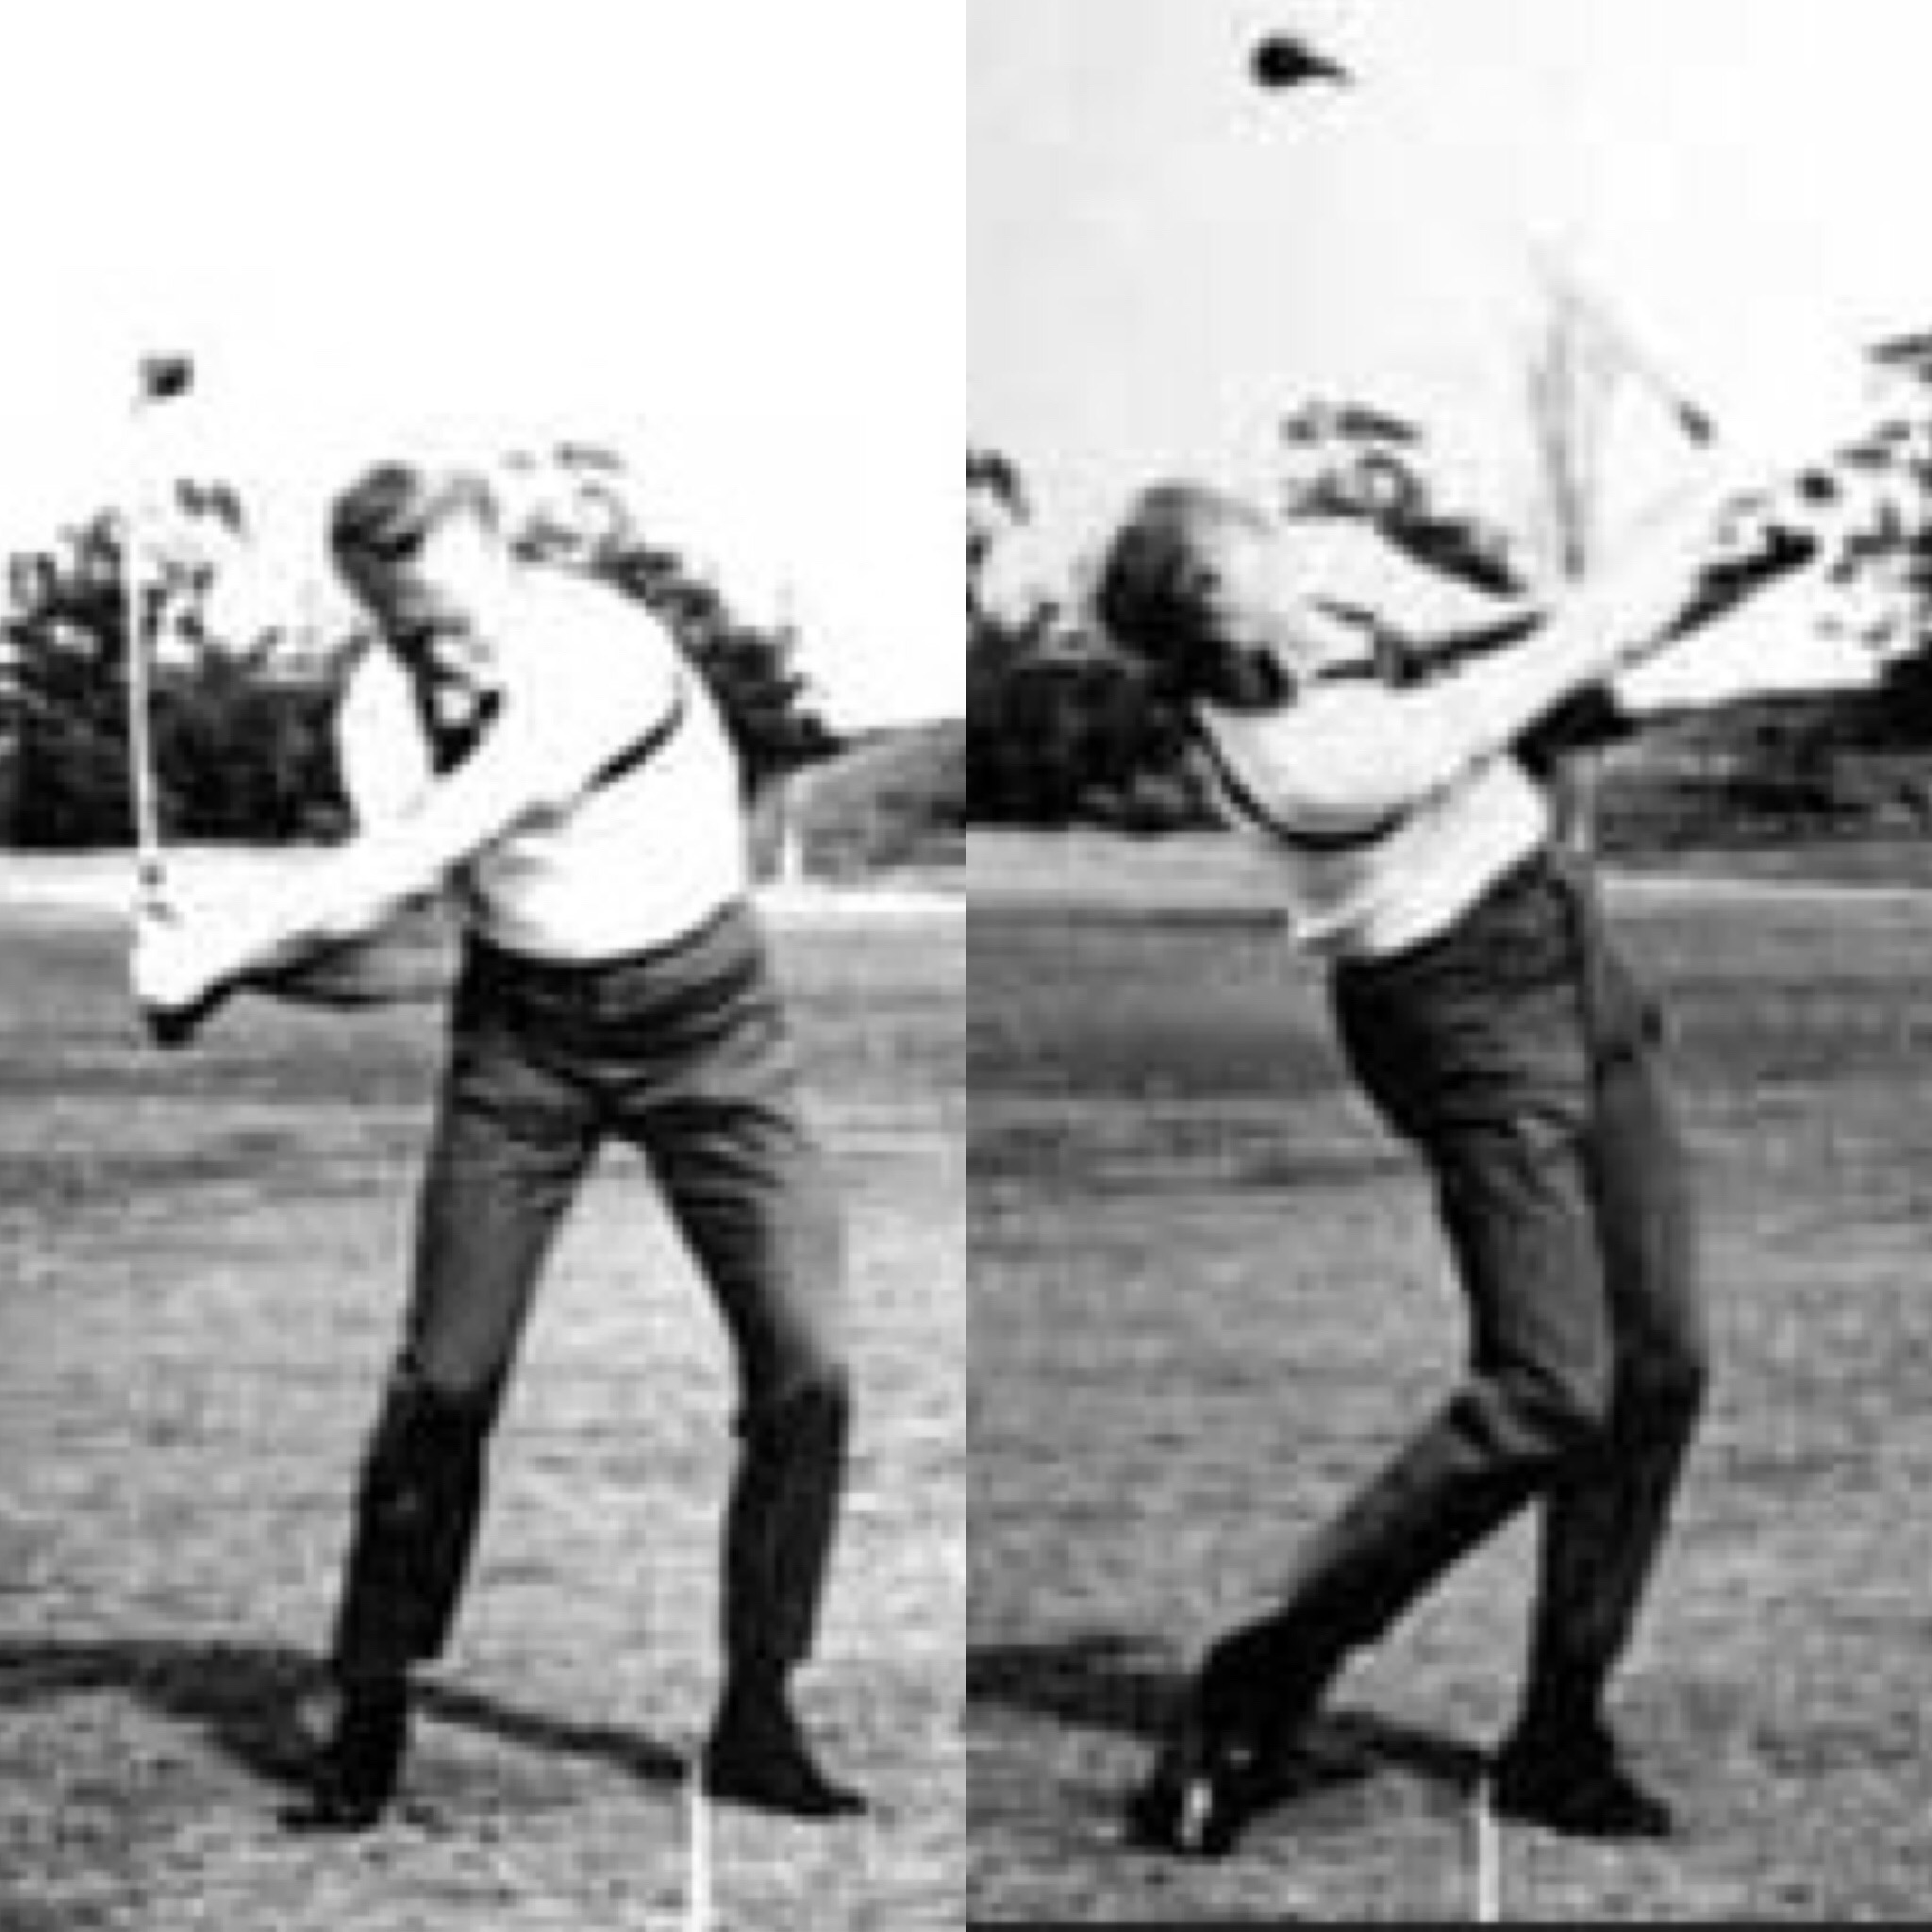 Long Driver Mike Austin Uses His Hands to Hit the Ball Hard